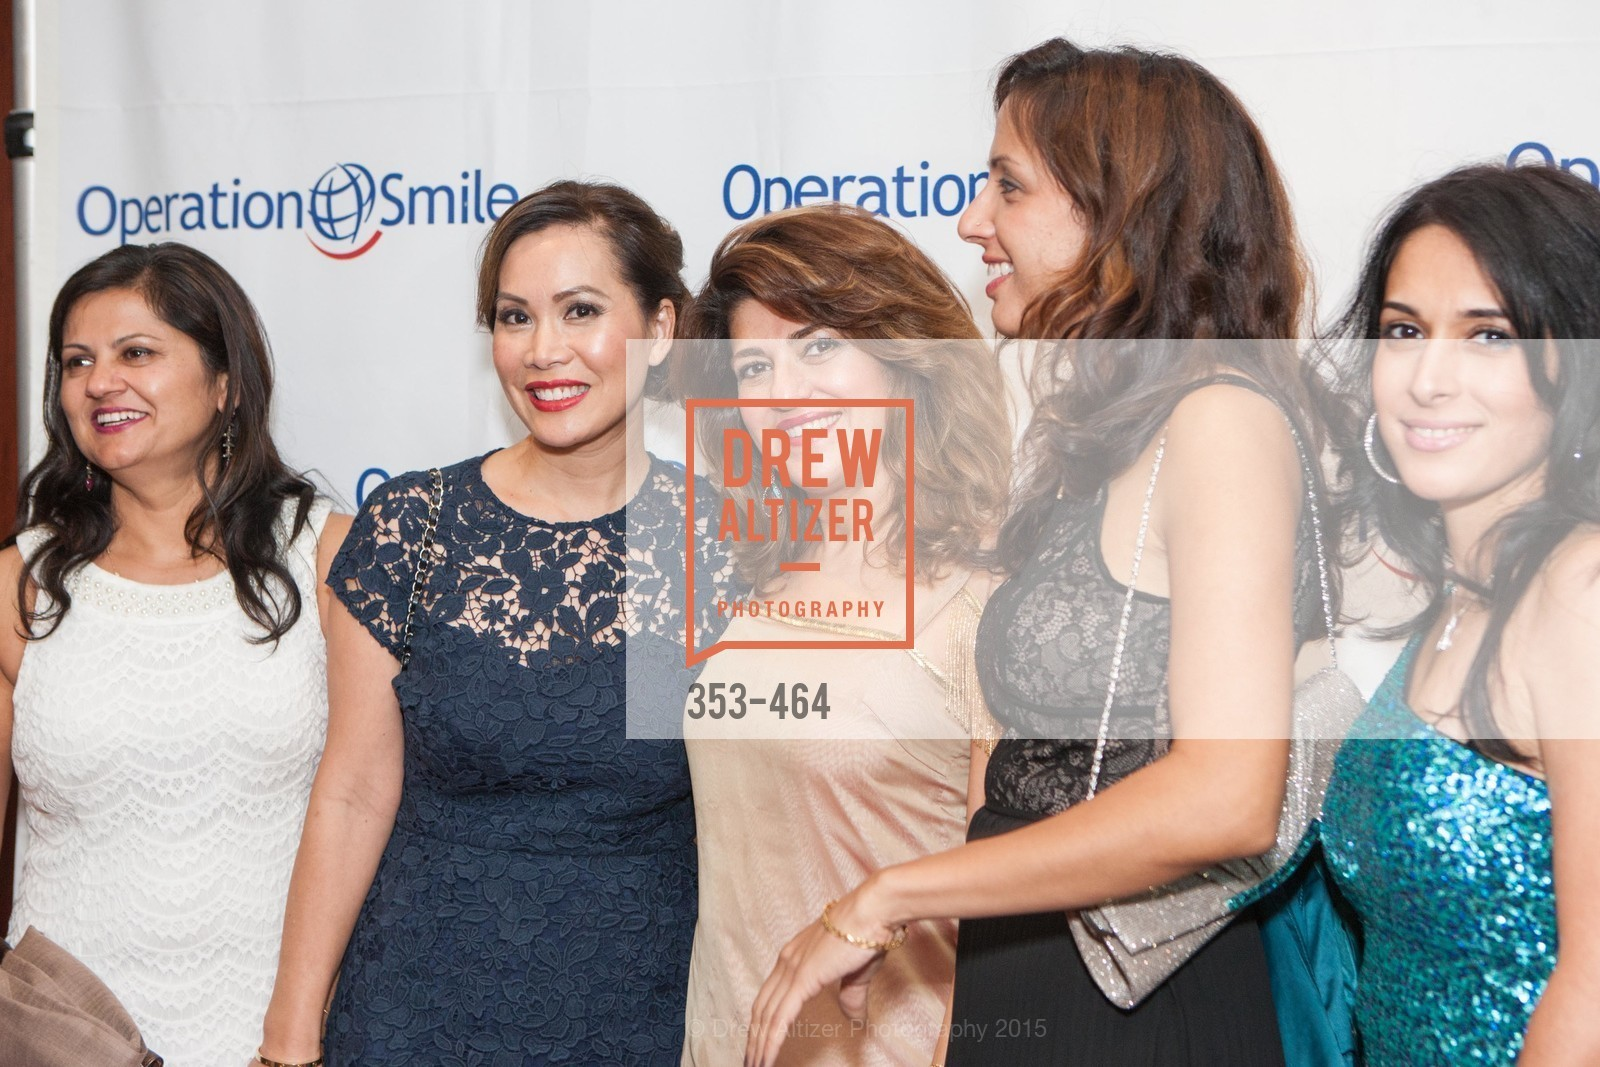 Step & Repeat, Operation Smile Presents THE SAN FRANCISCO 2015 SMILE GALA, November 7th, 2015, Photo,Drew Altizer, Drew Altizer Photography, full-service event agency, private events, San Francisco photographer, photographer California